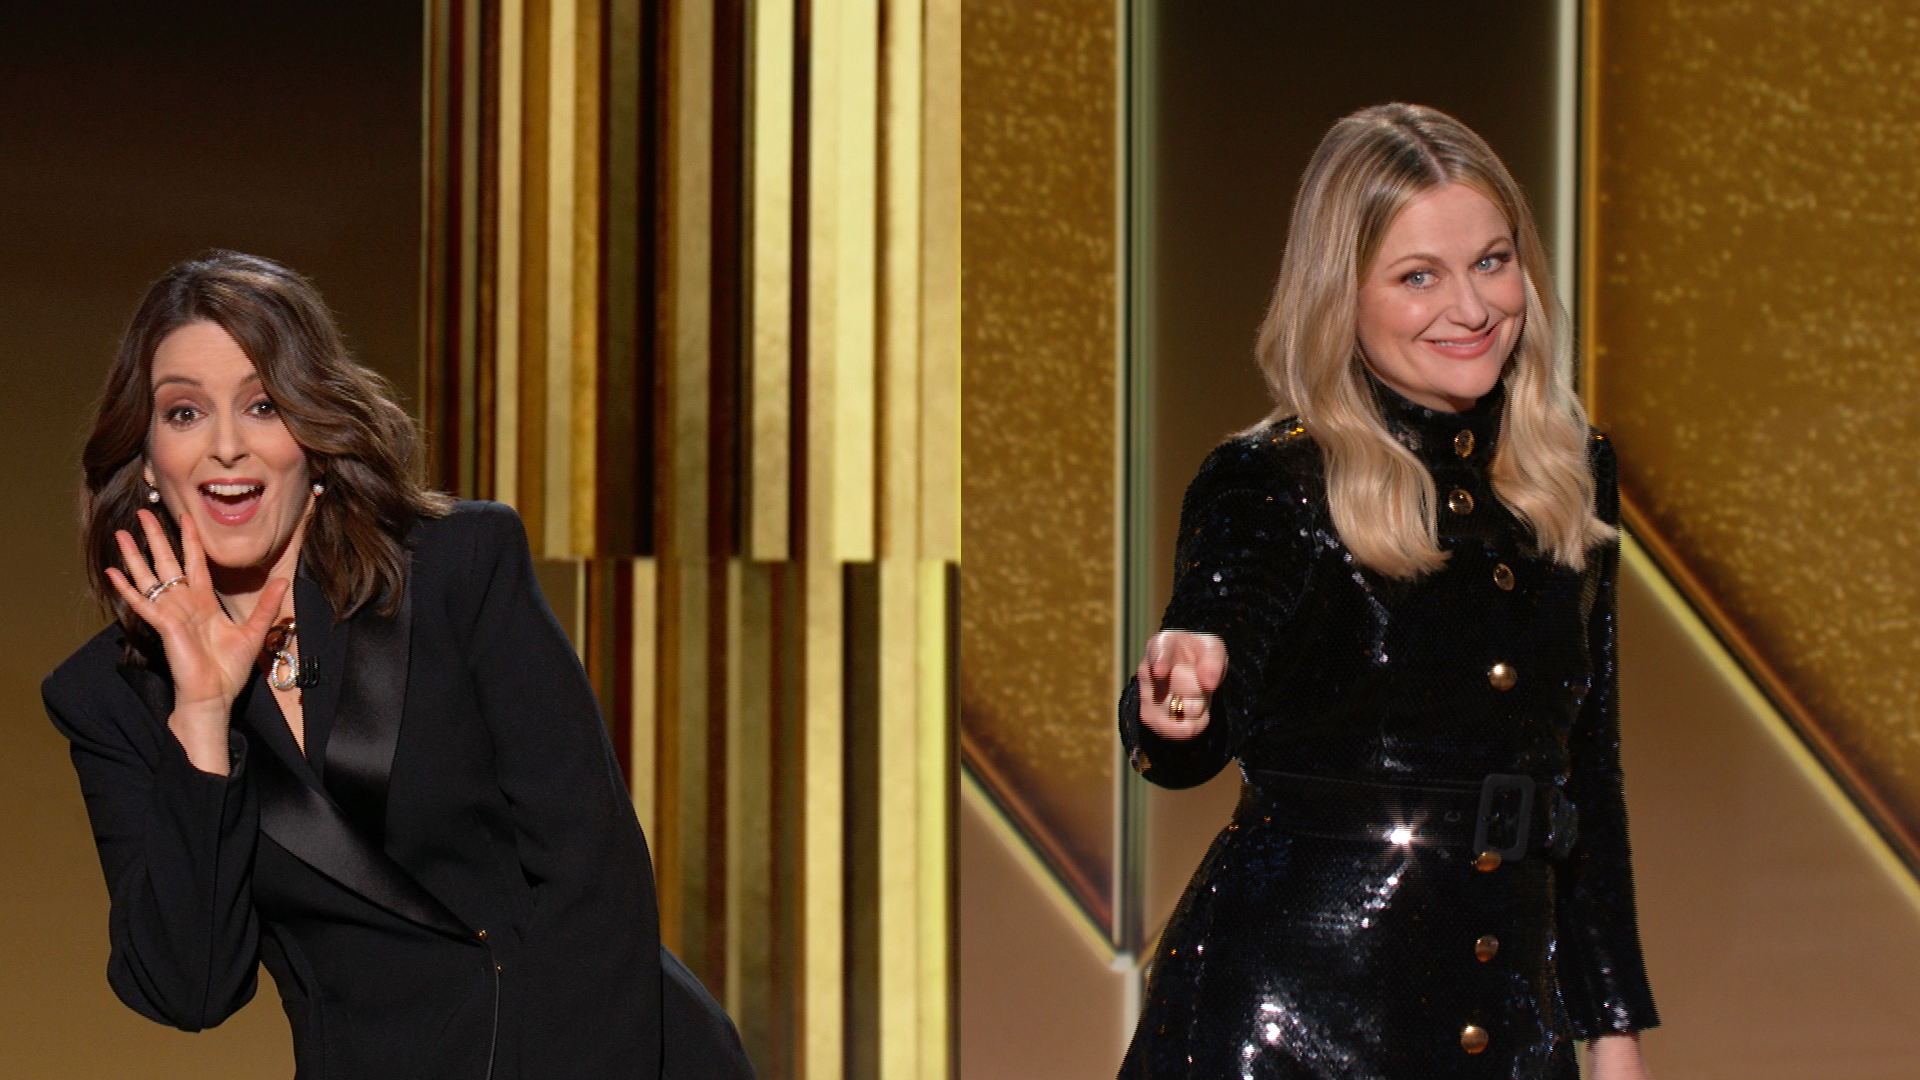 Tina Fey, Amy Poehler Stun in Chic All-Black Ensembles at the Golden Globes